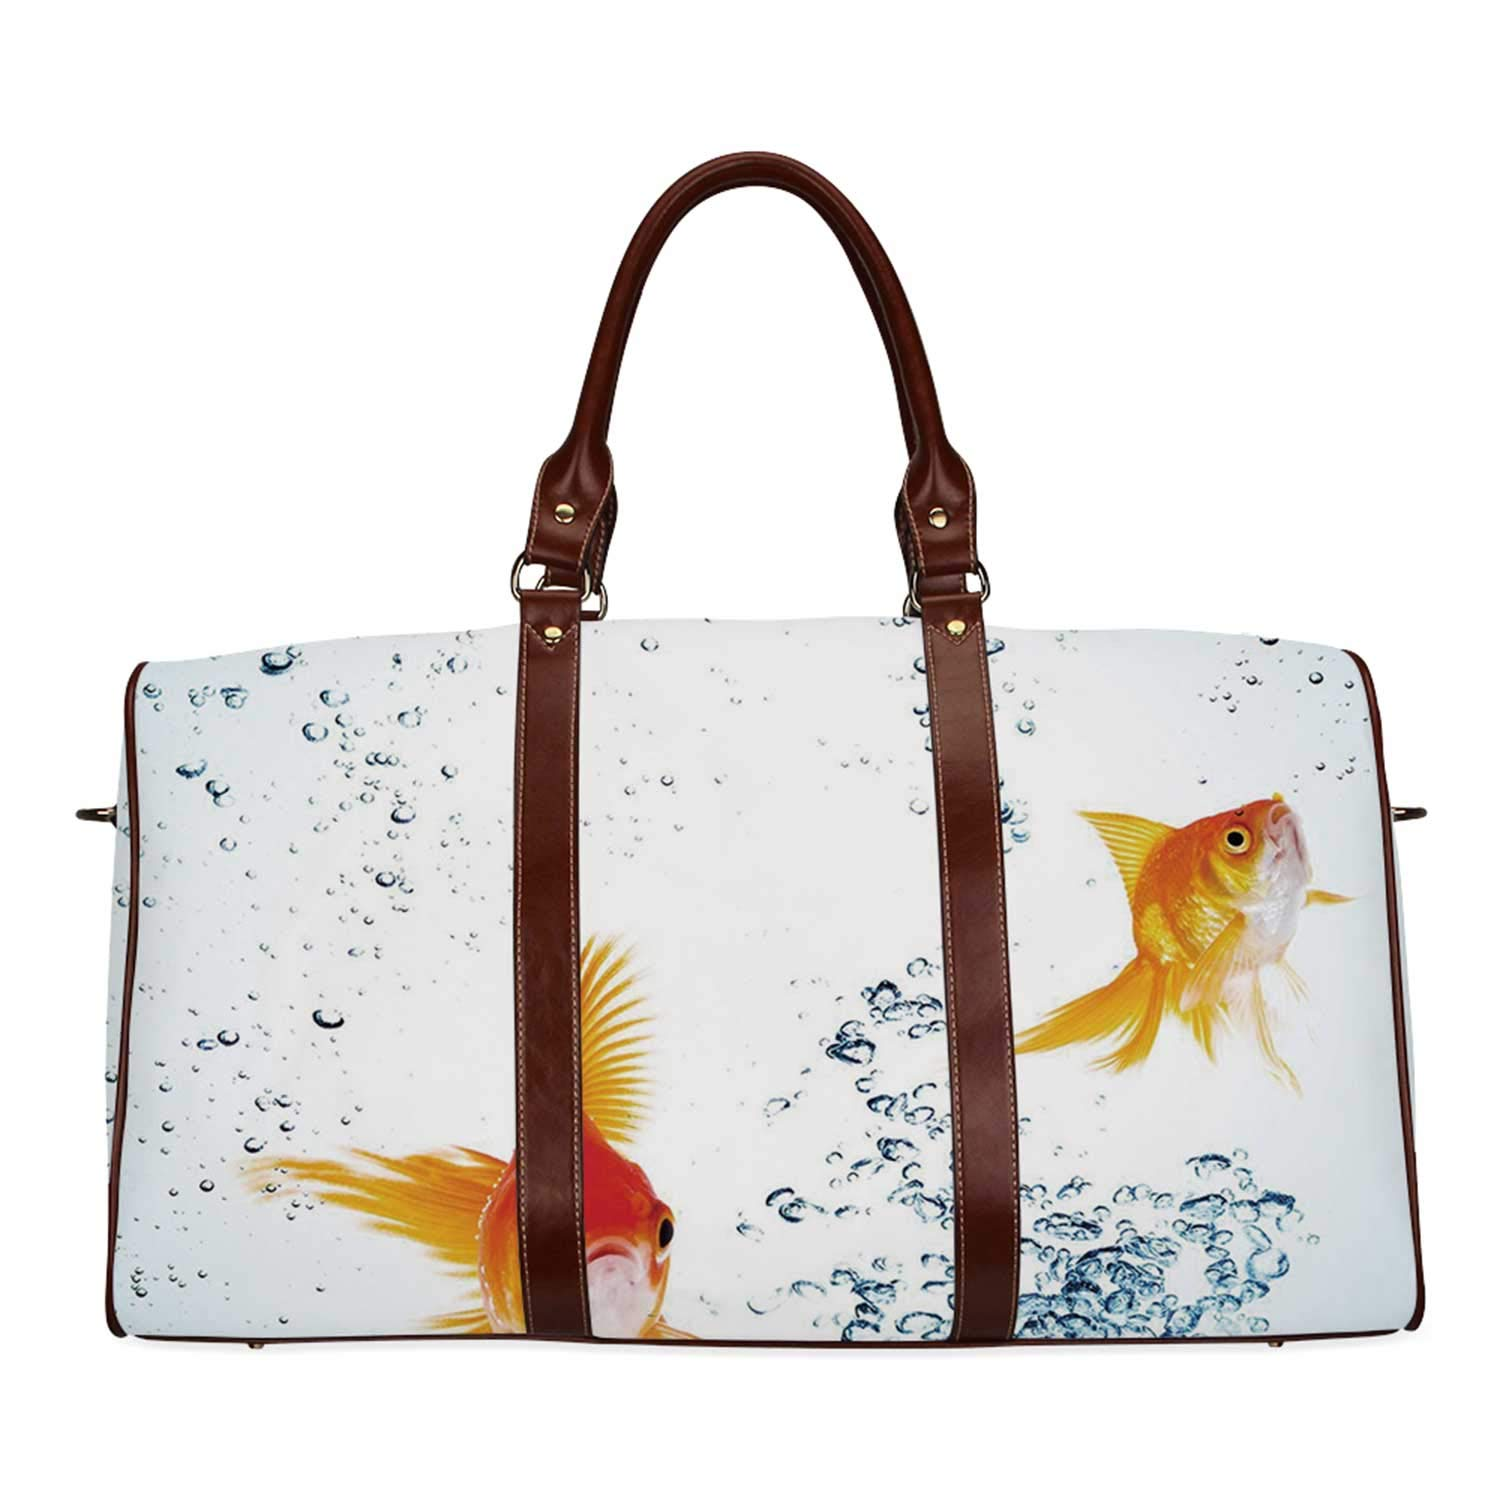 Aquarium Brown Travel Bag,Under the Aquarium Theme Cute Swimming Goldfishes with Vivid Bubbles Image for Home,20.8''L x 12''W x 9.8''H by YOLIYANA